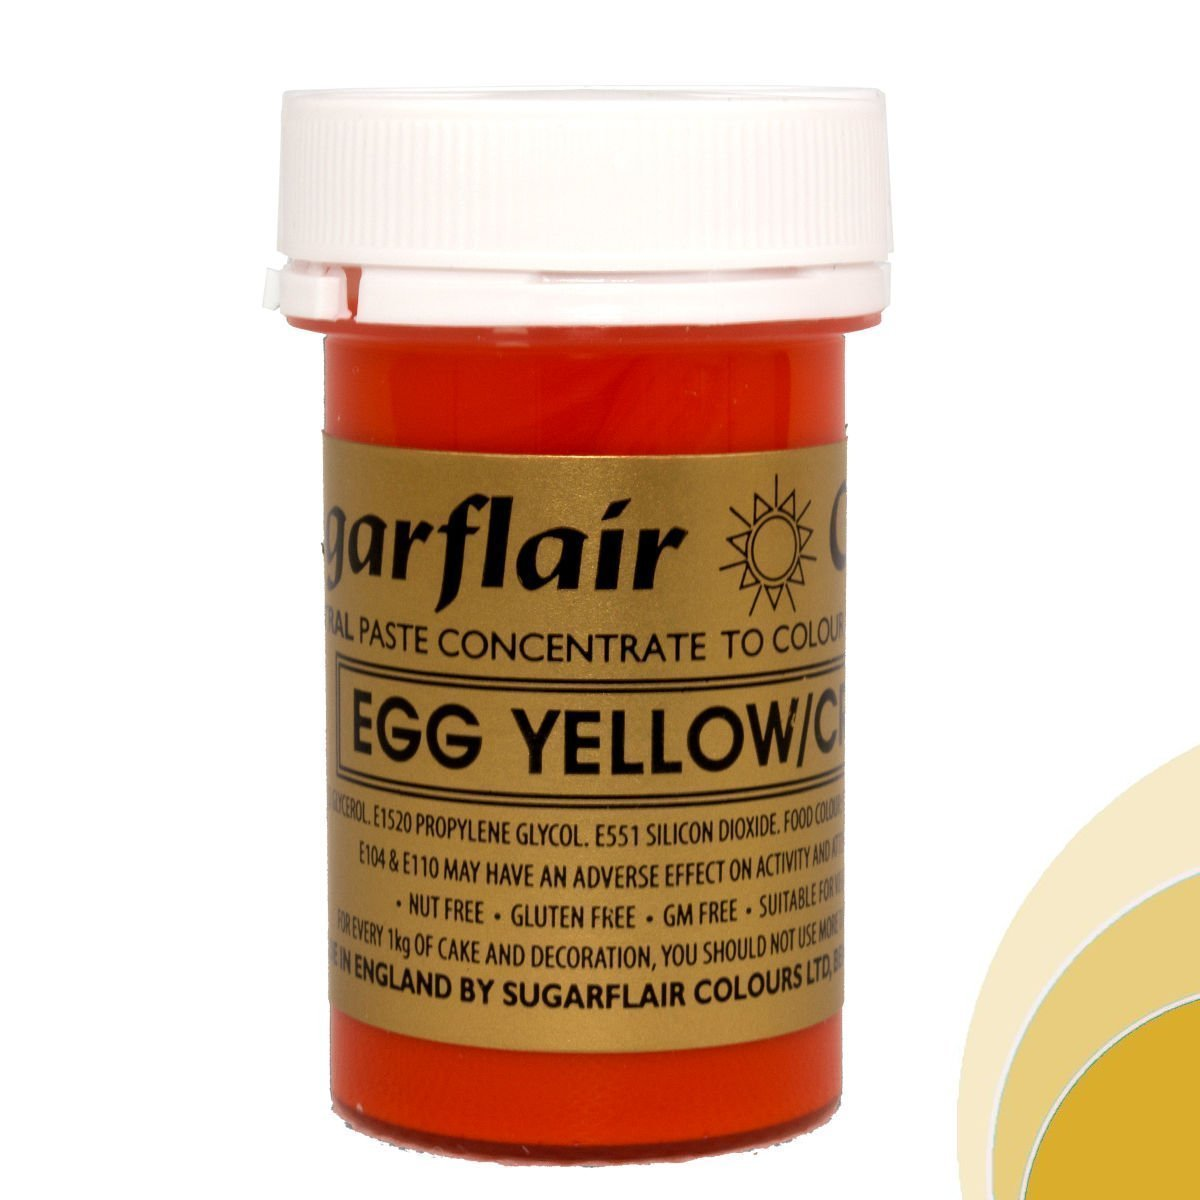 Sugarflair Spectral Concentrated Paste Colour - Egg Yellow / Cream